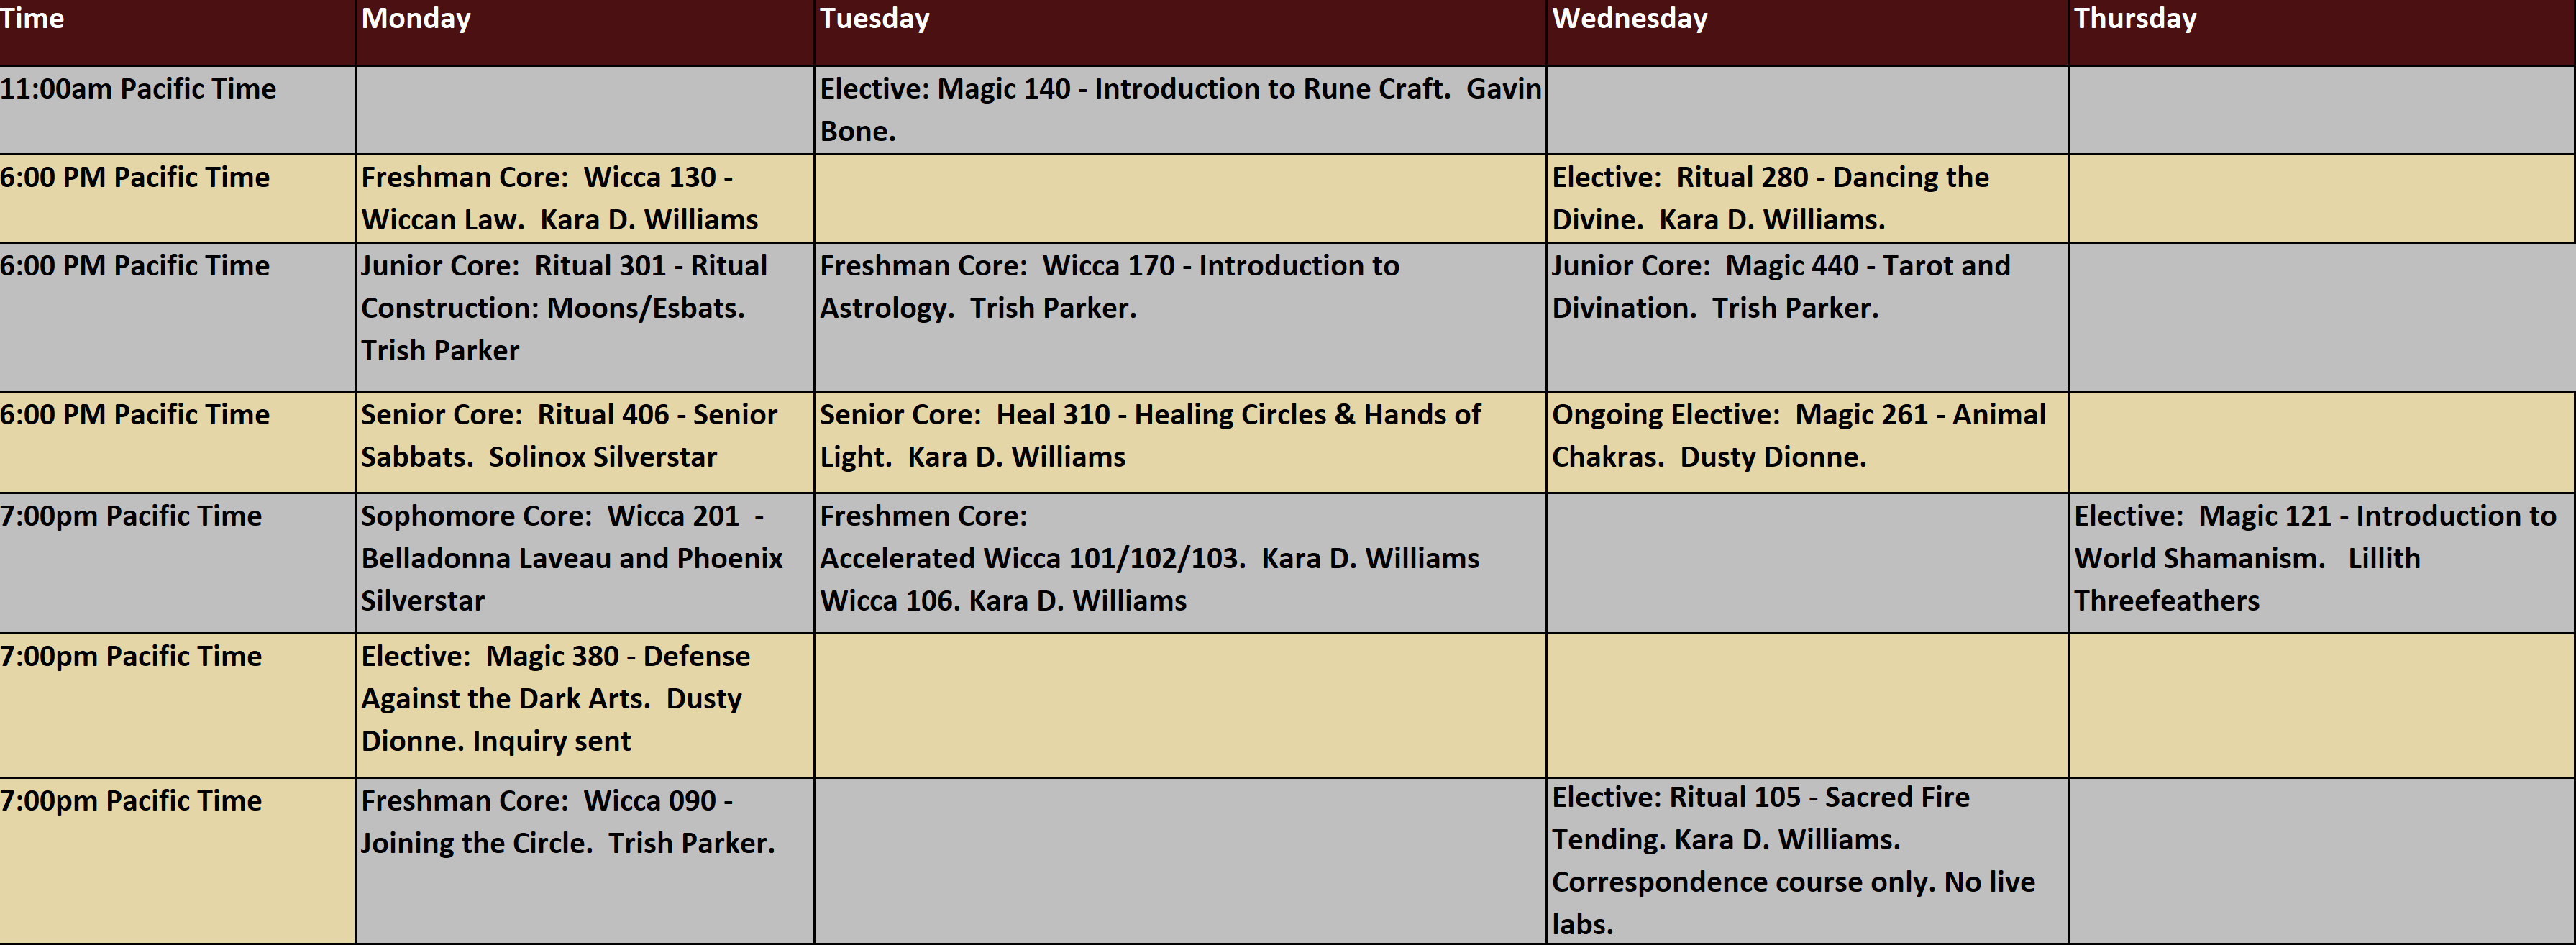 Schedule of classes for Summer 2021 session